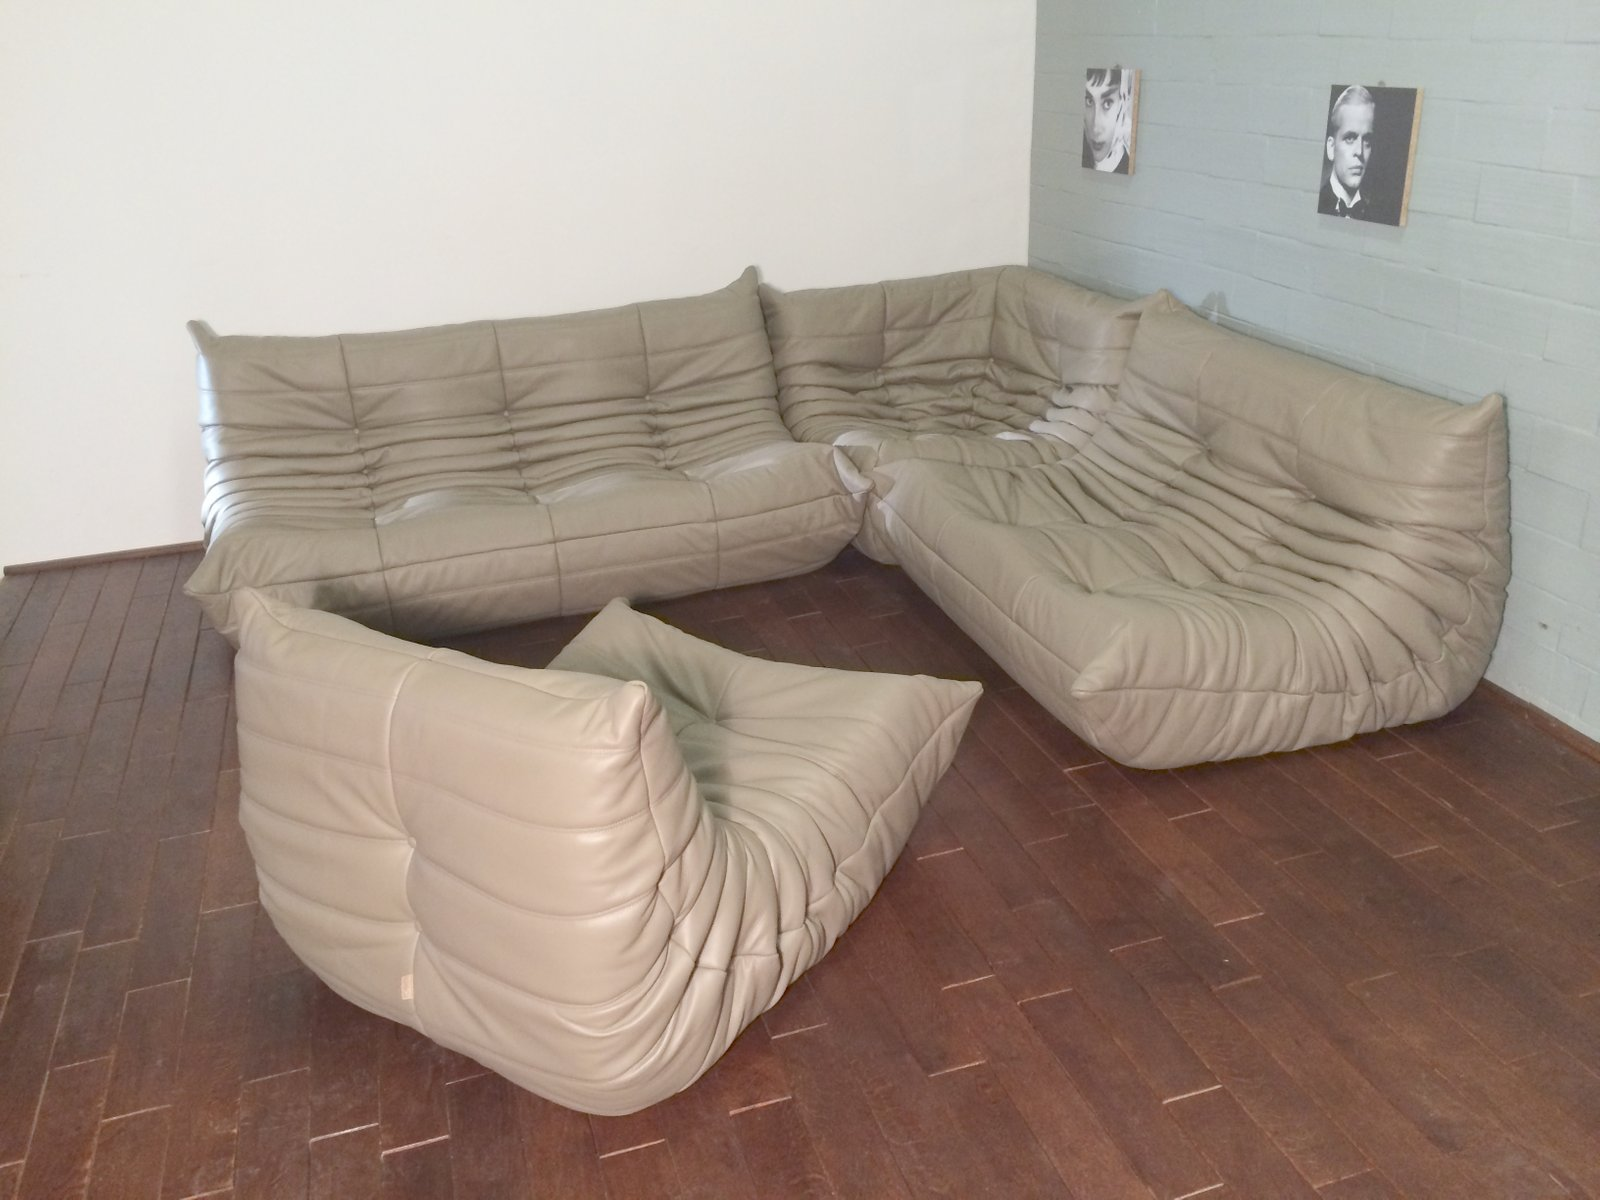 beige leather togo sofa set by michel ducaroy for ligne roset 1974 for sale at pamono. Black Bedroom Furniture Sets. Home Design Ideas